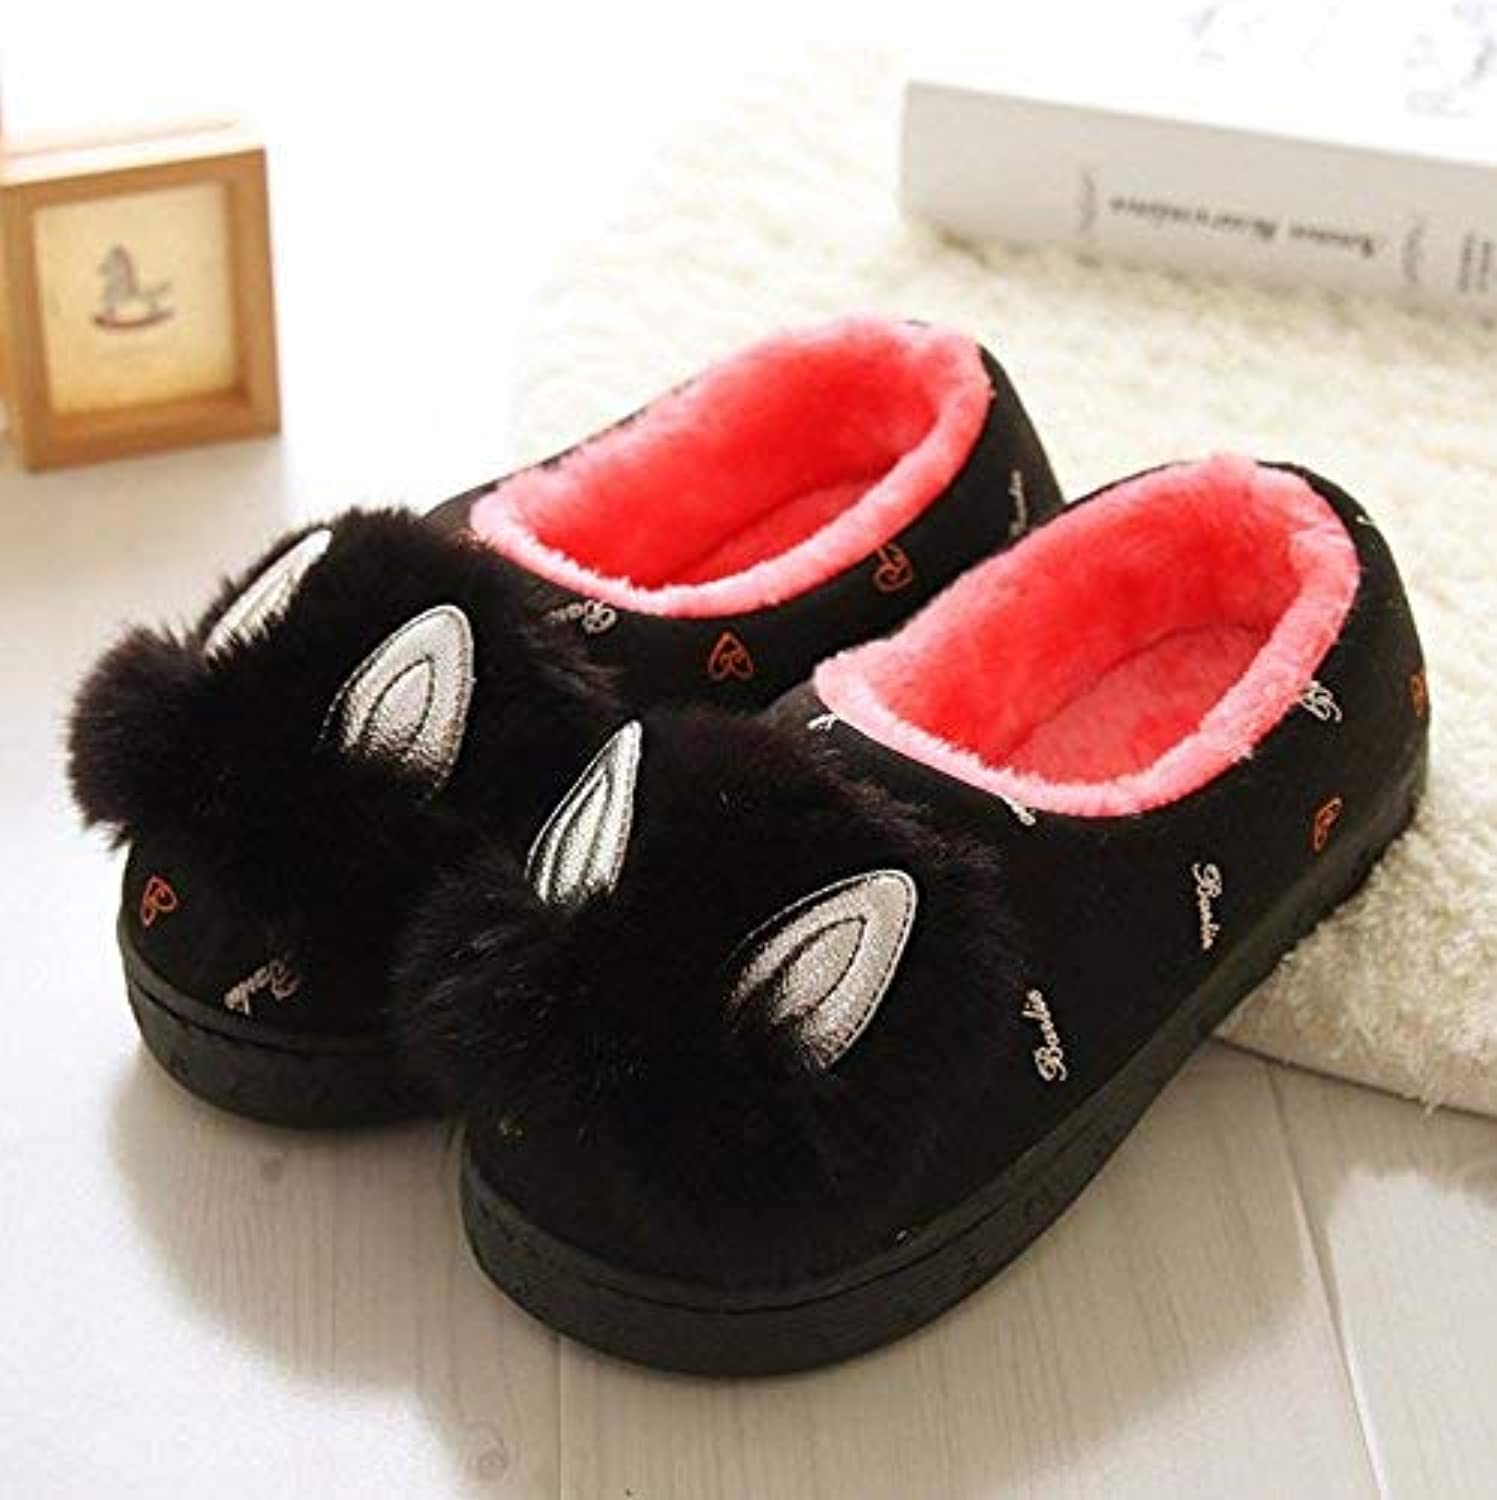 JaHGDU Women 's Home Cotton Cute Slippers Indoor Keep Warm Casual Slippers Black Mixed color Personality Quality for Women Small